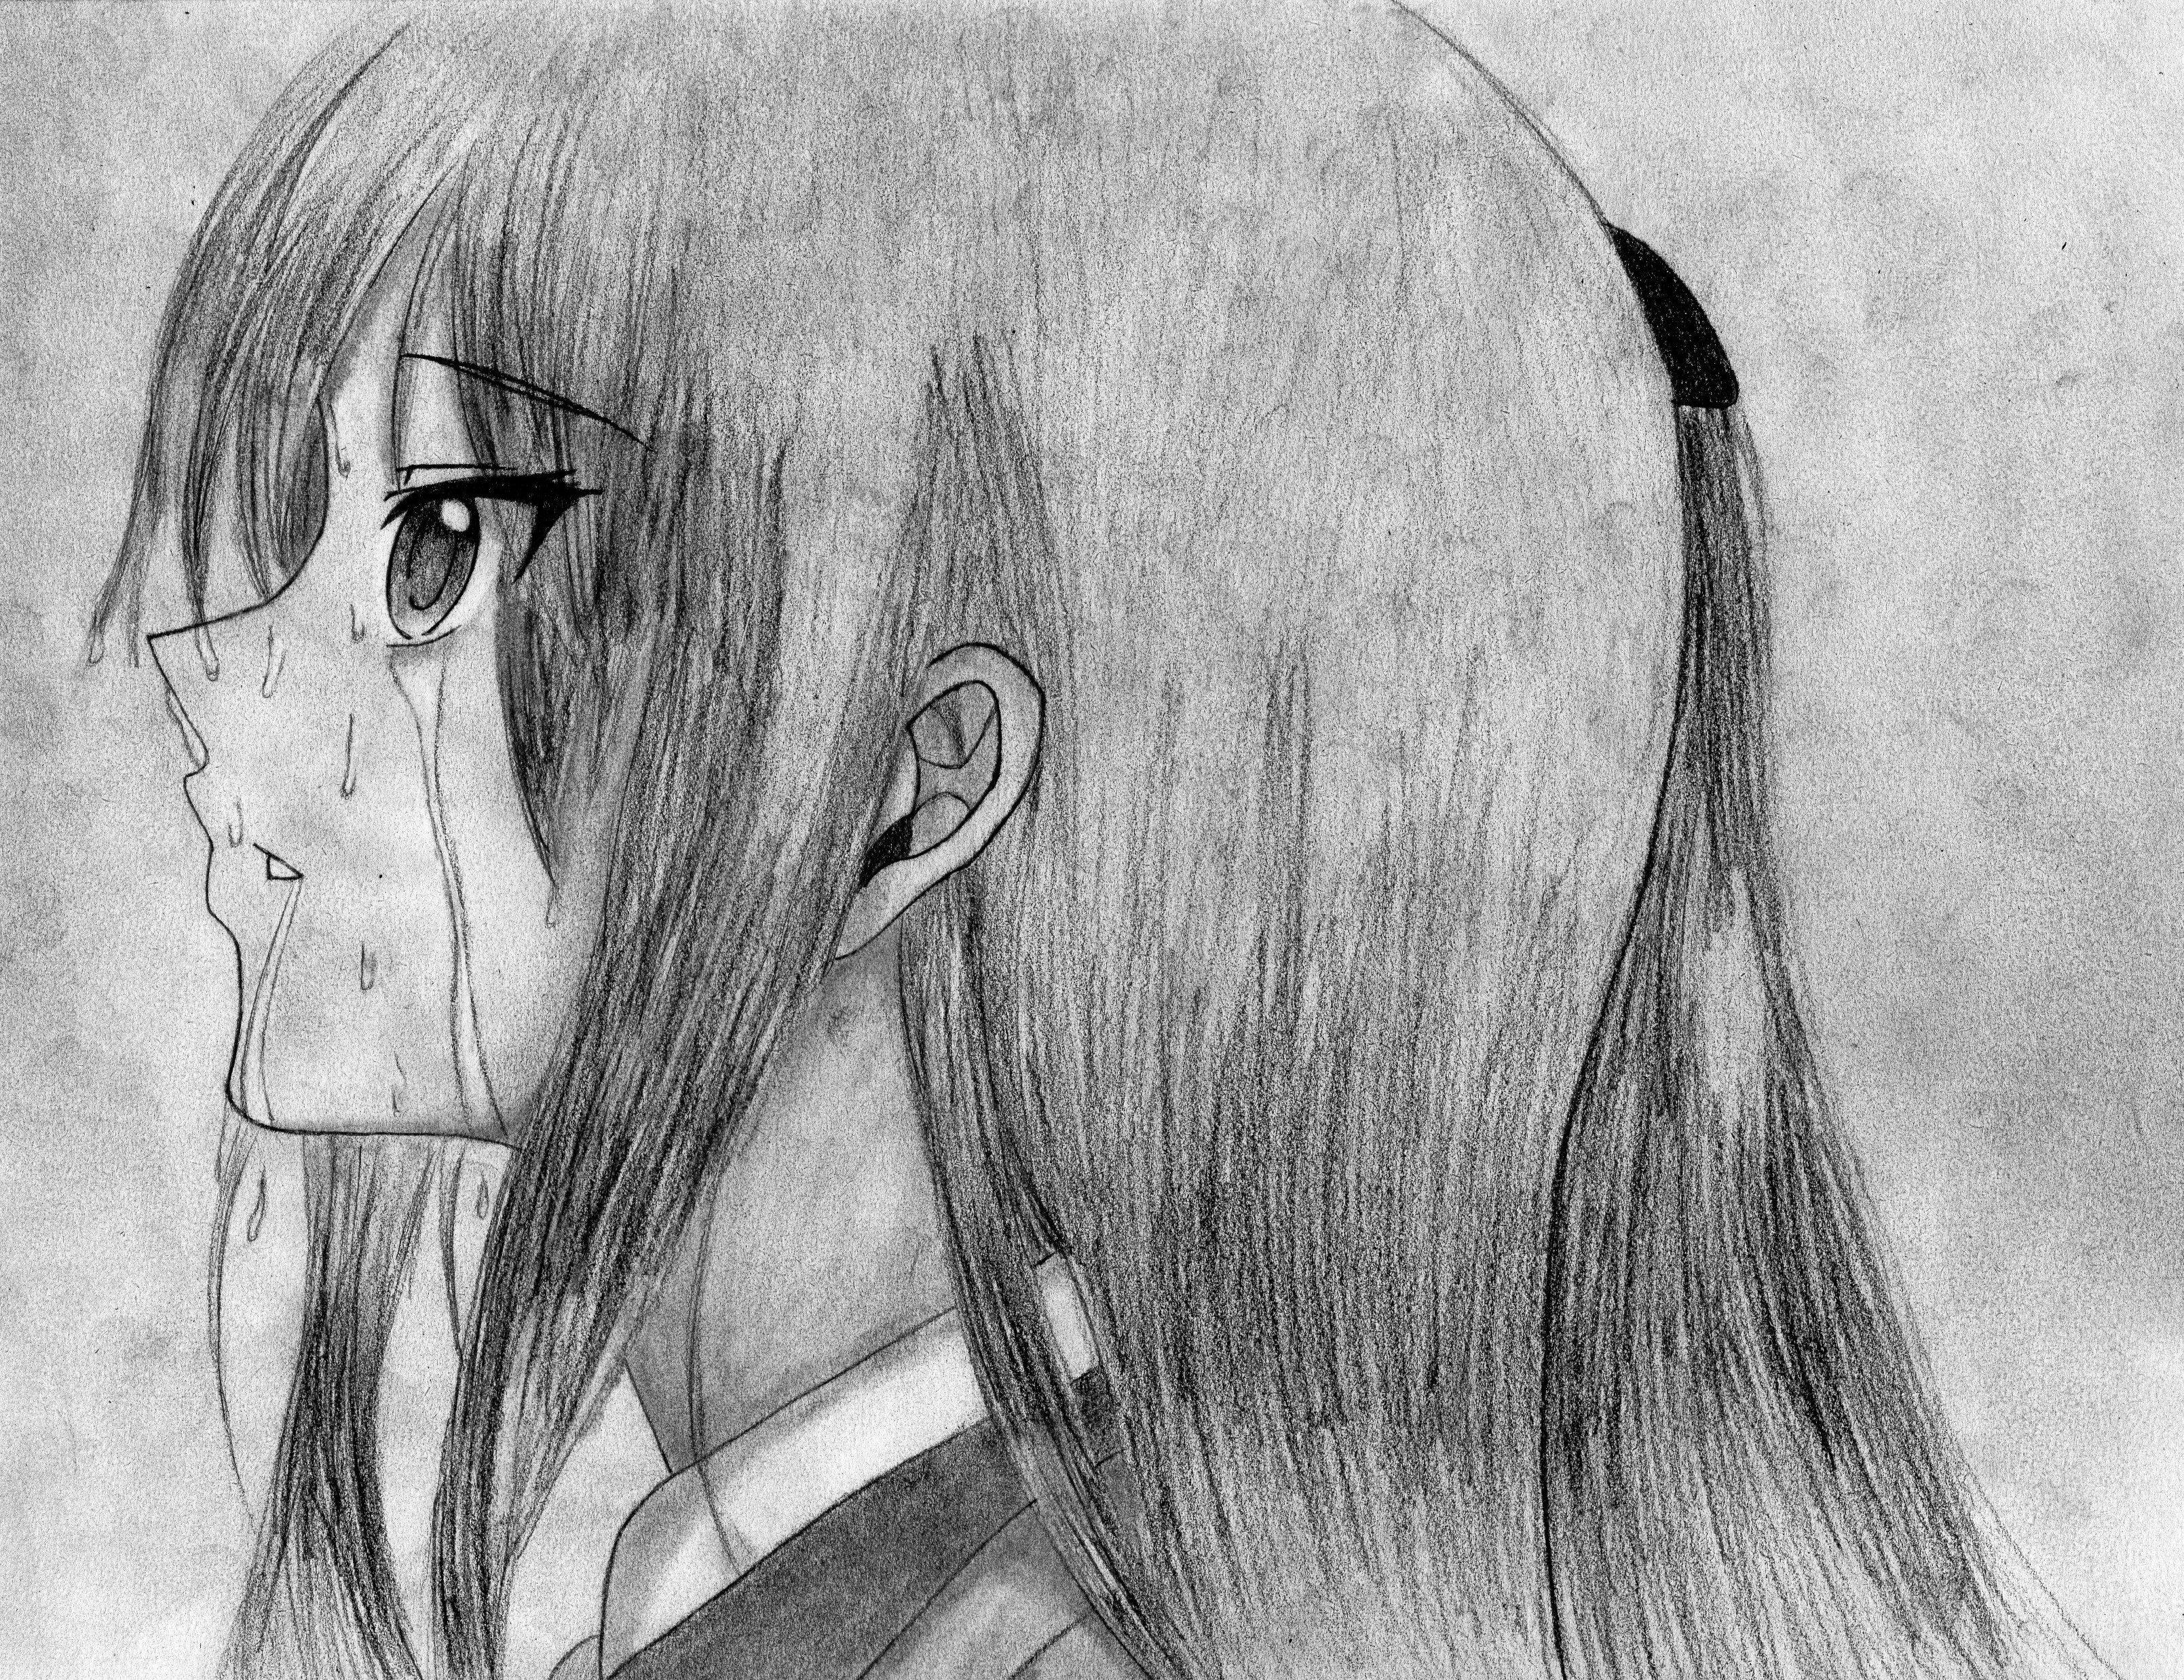 Crying in the Rain by OtakuTiki on DeviantArt Lonely Anime Girl Crying In The Rain